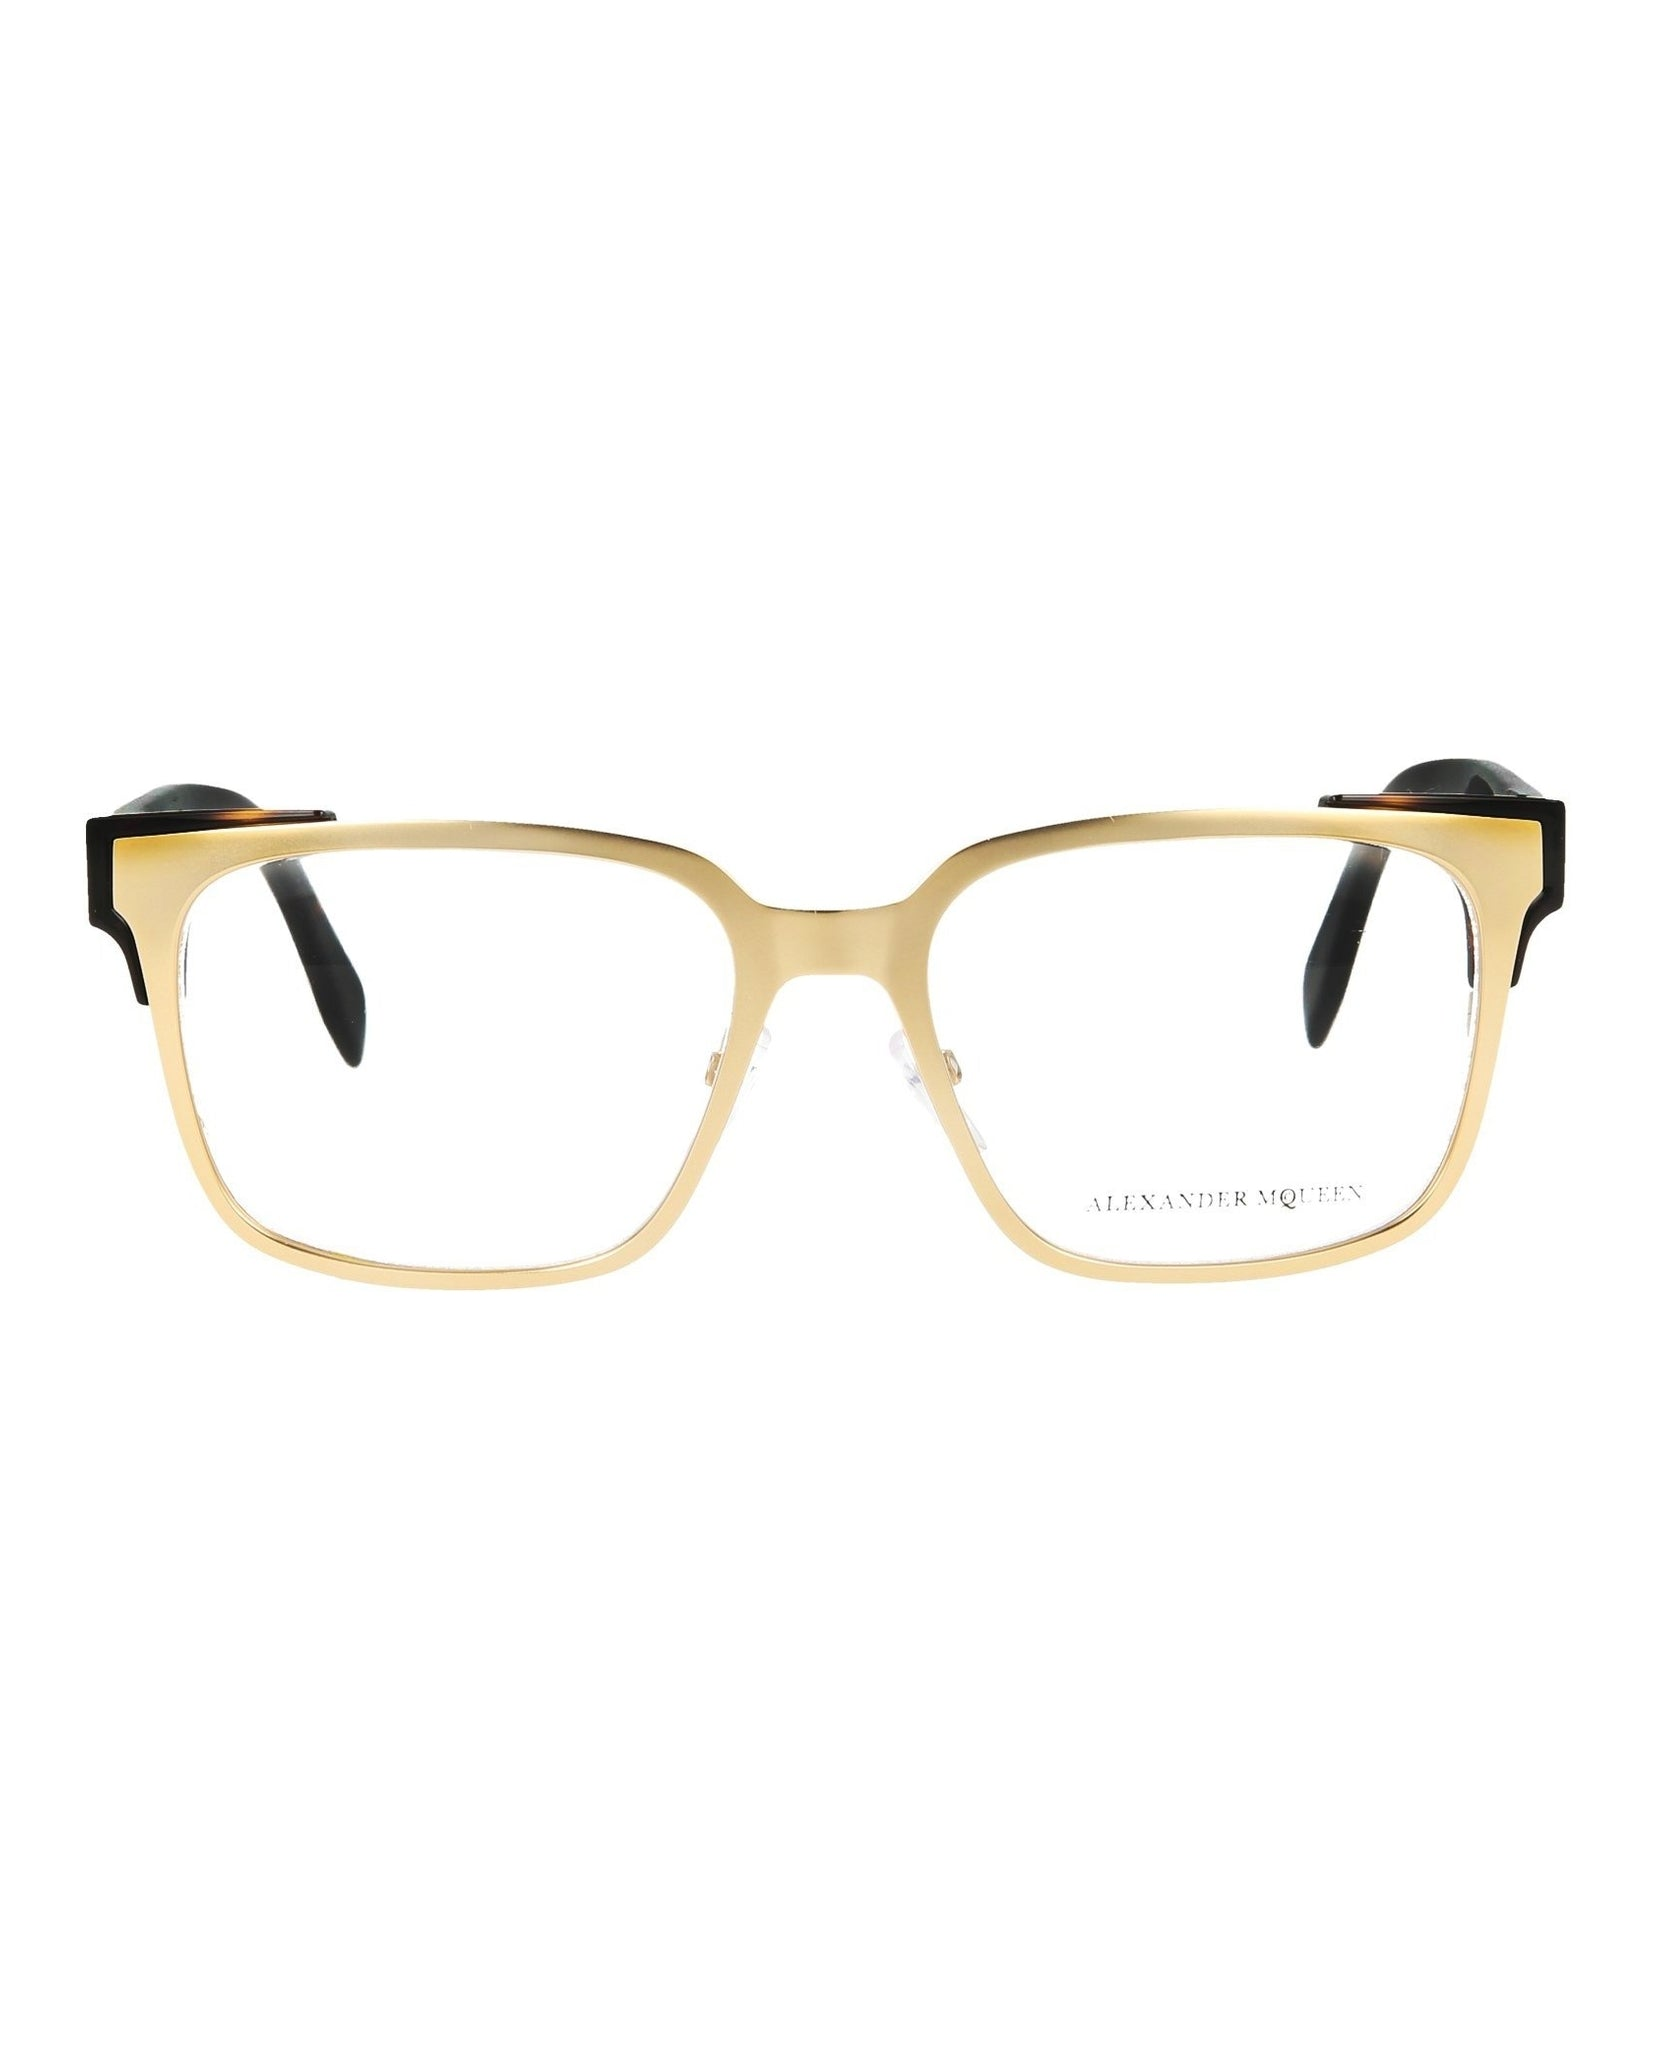 Alexander McQueen Square-Rectangle Optical Frames